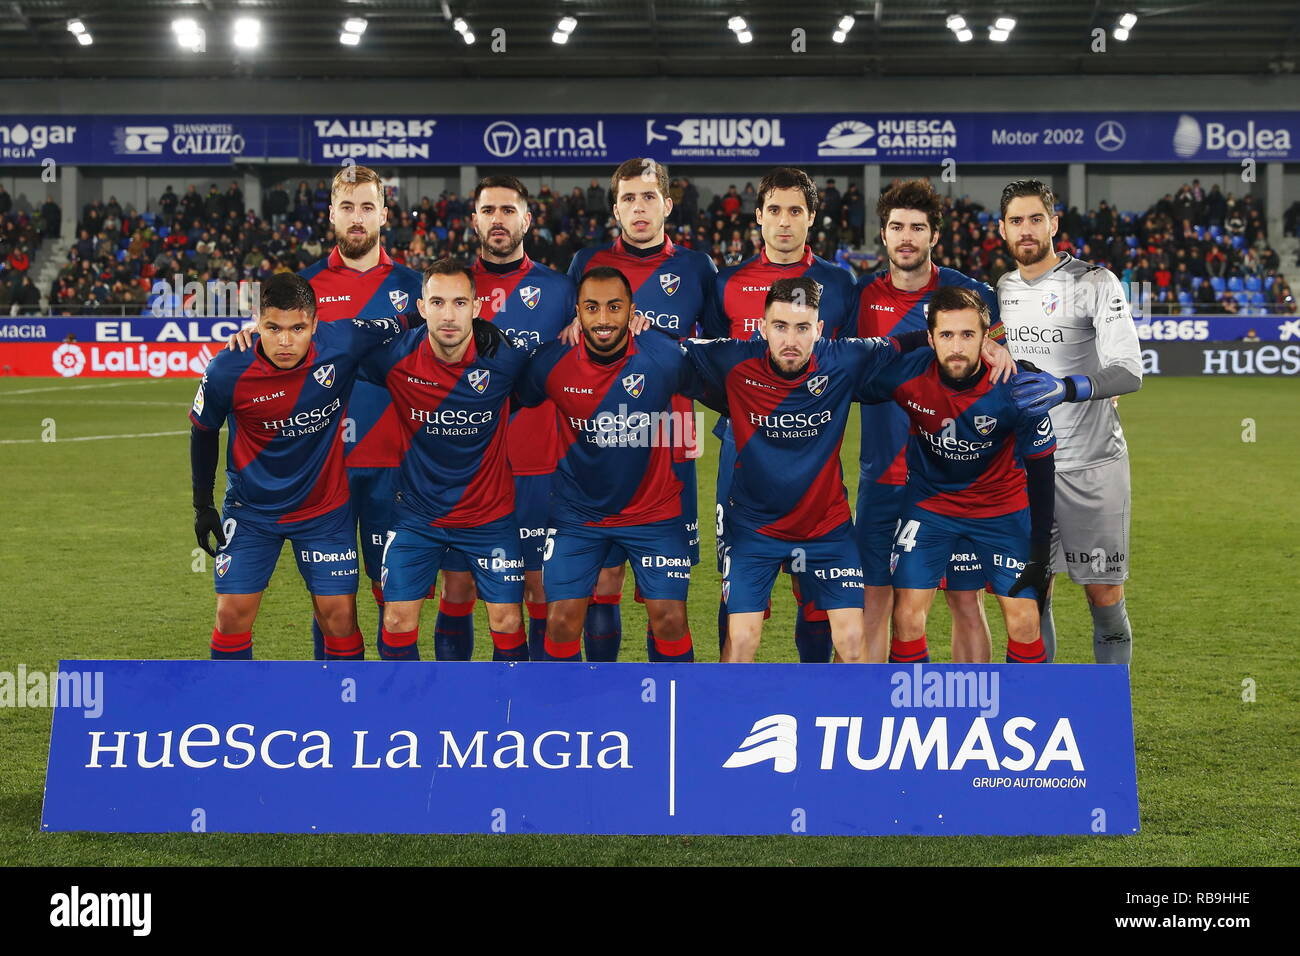 Sd Huesca High Resolution Stock Photography and Images - Alamy